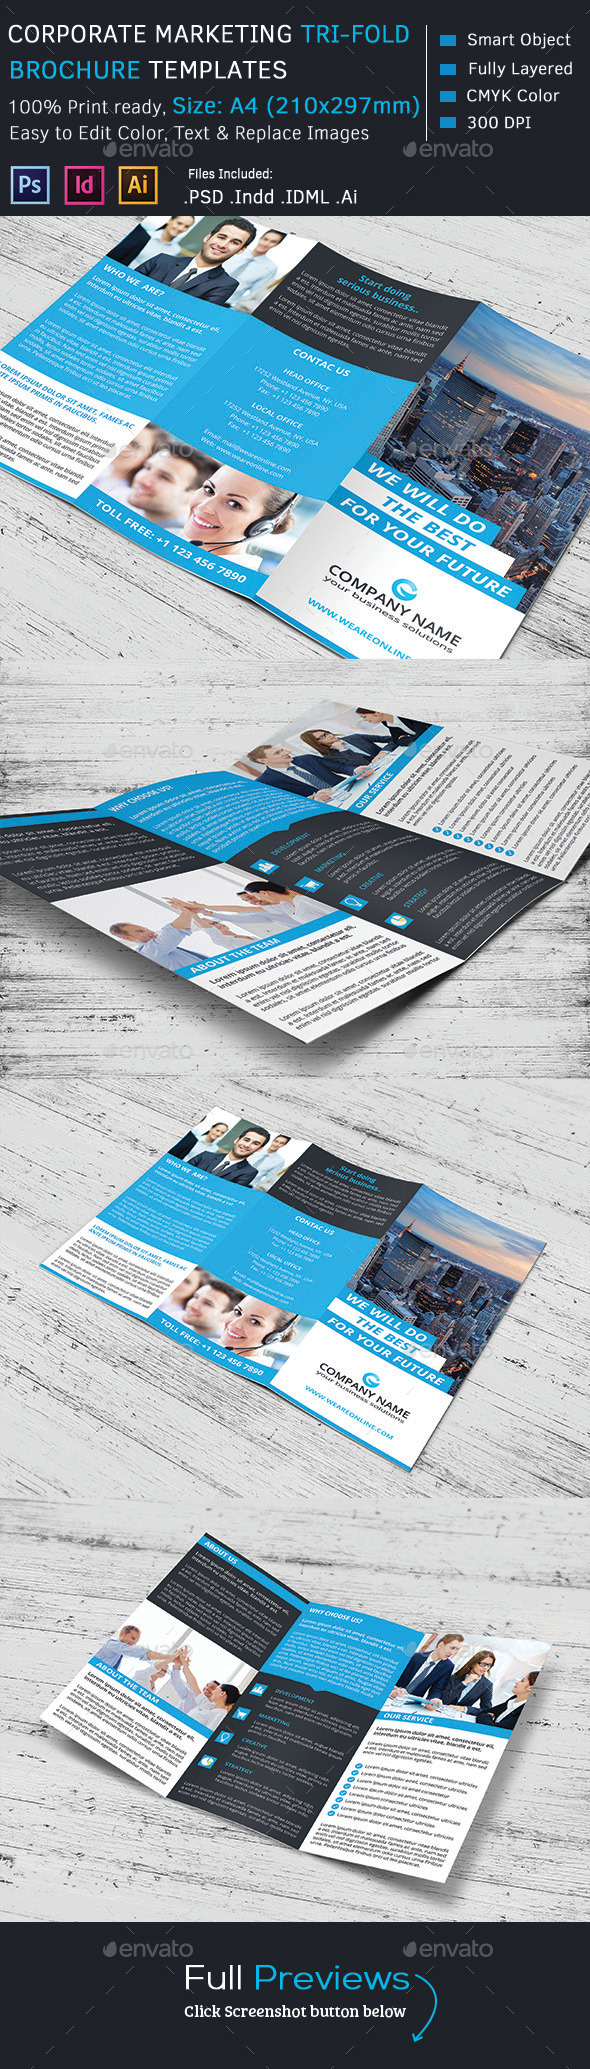 GraphicRiver Corporate Marketing Tri-Fold Brochure 9325387